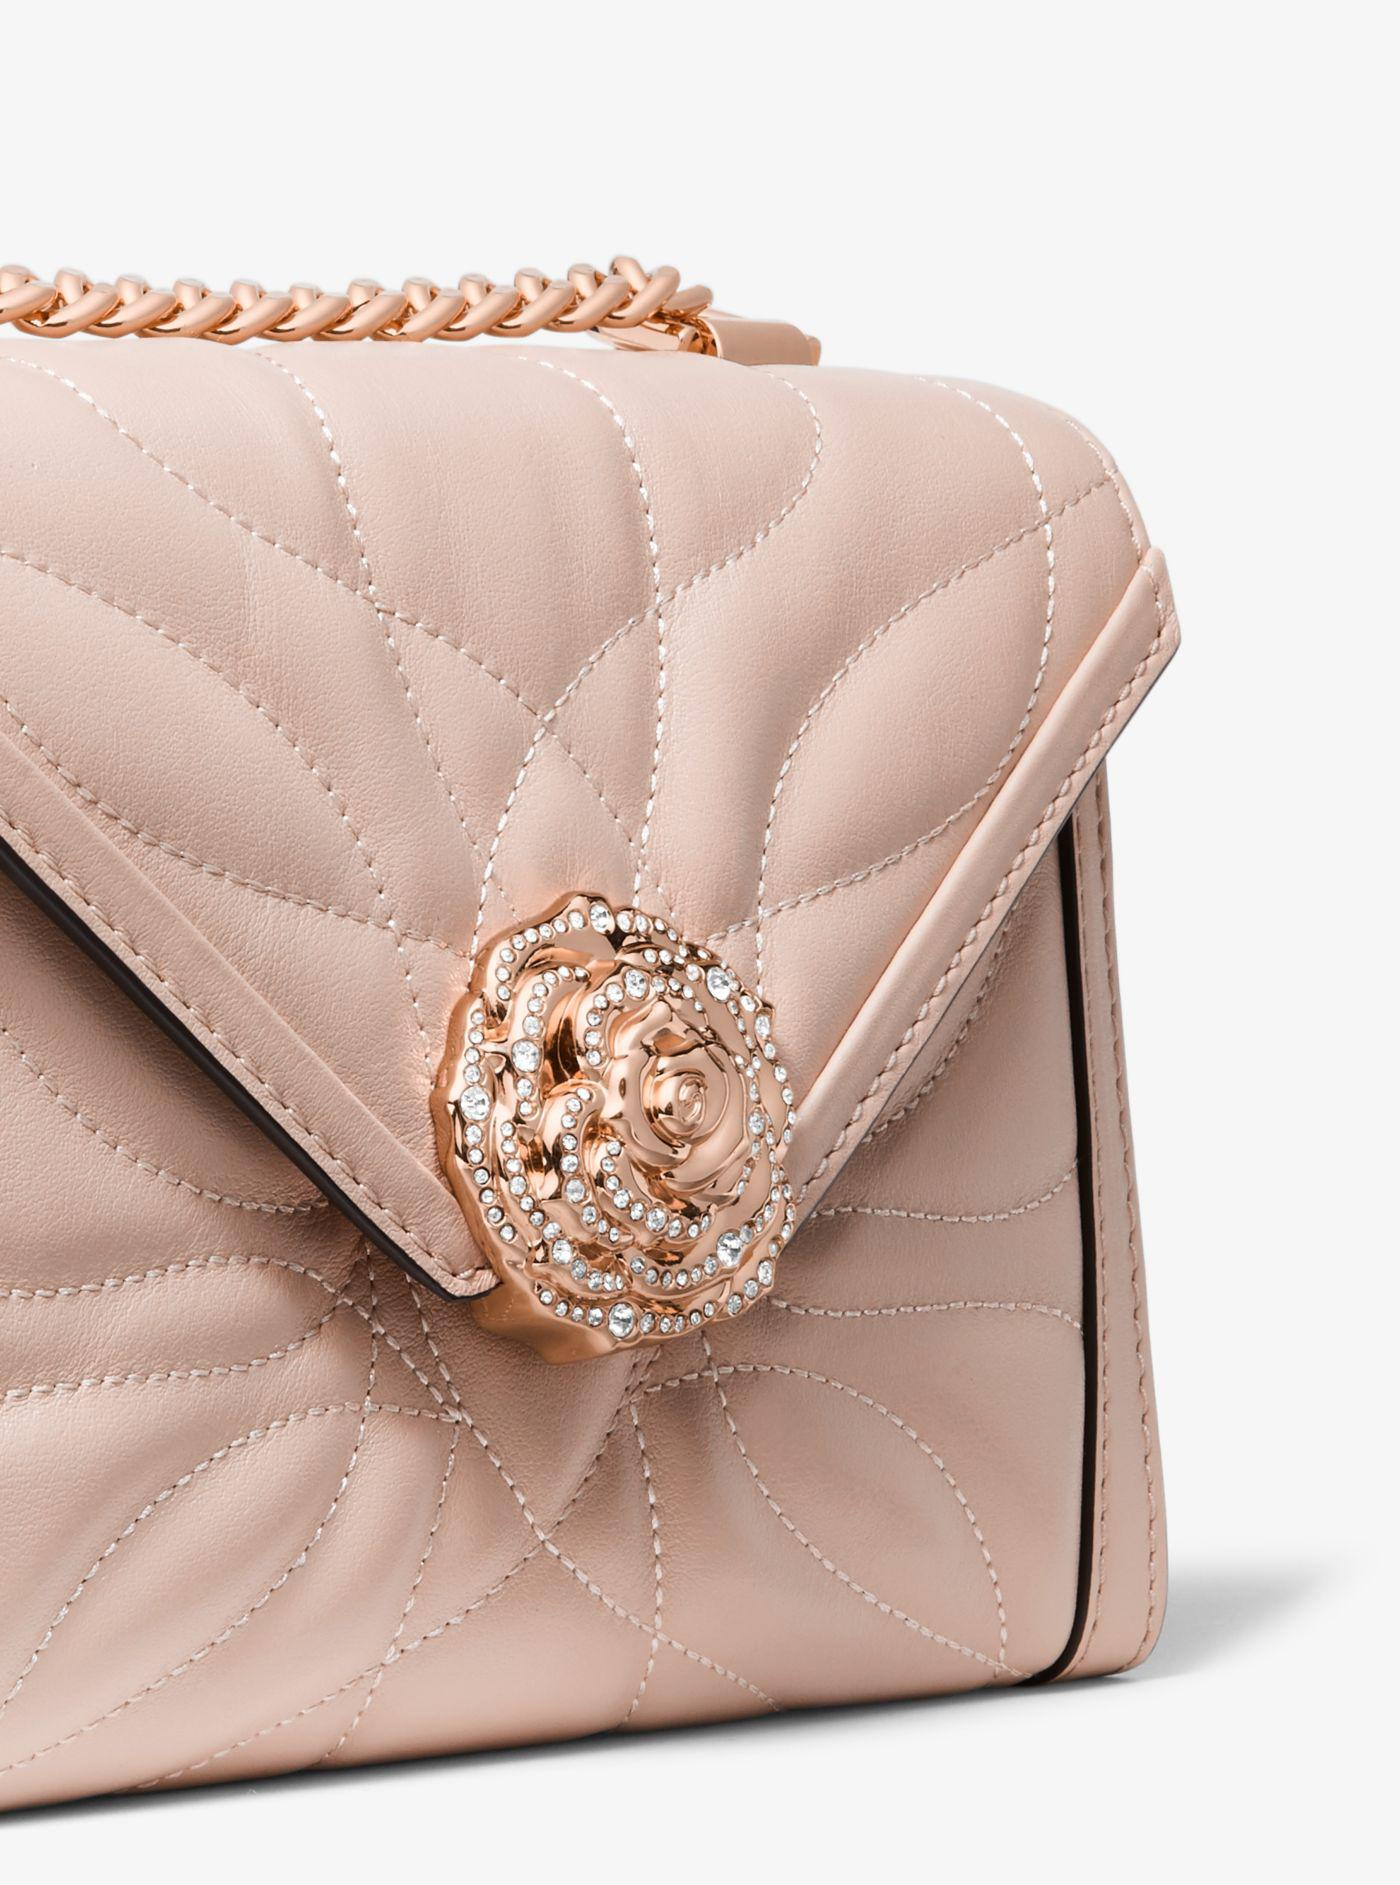 2245c54d807b23 Michael Kors Whitney Small Petal Quilted Leather Convertible ...